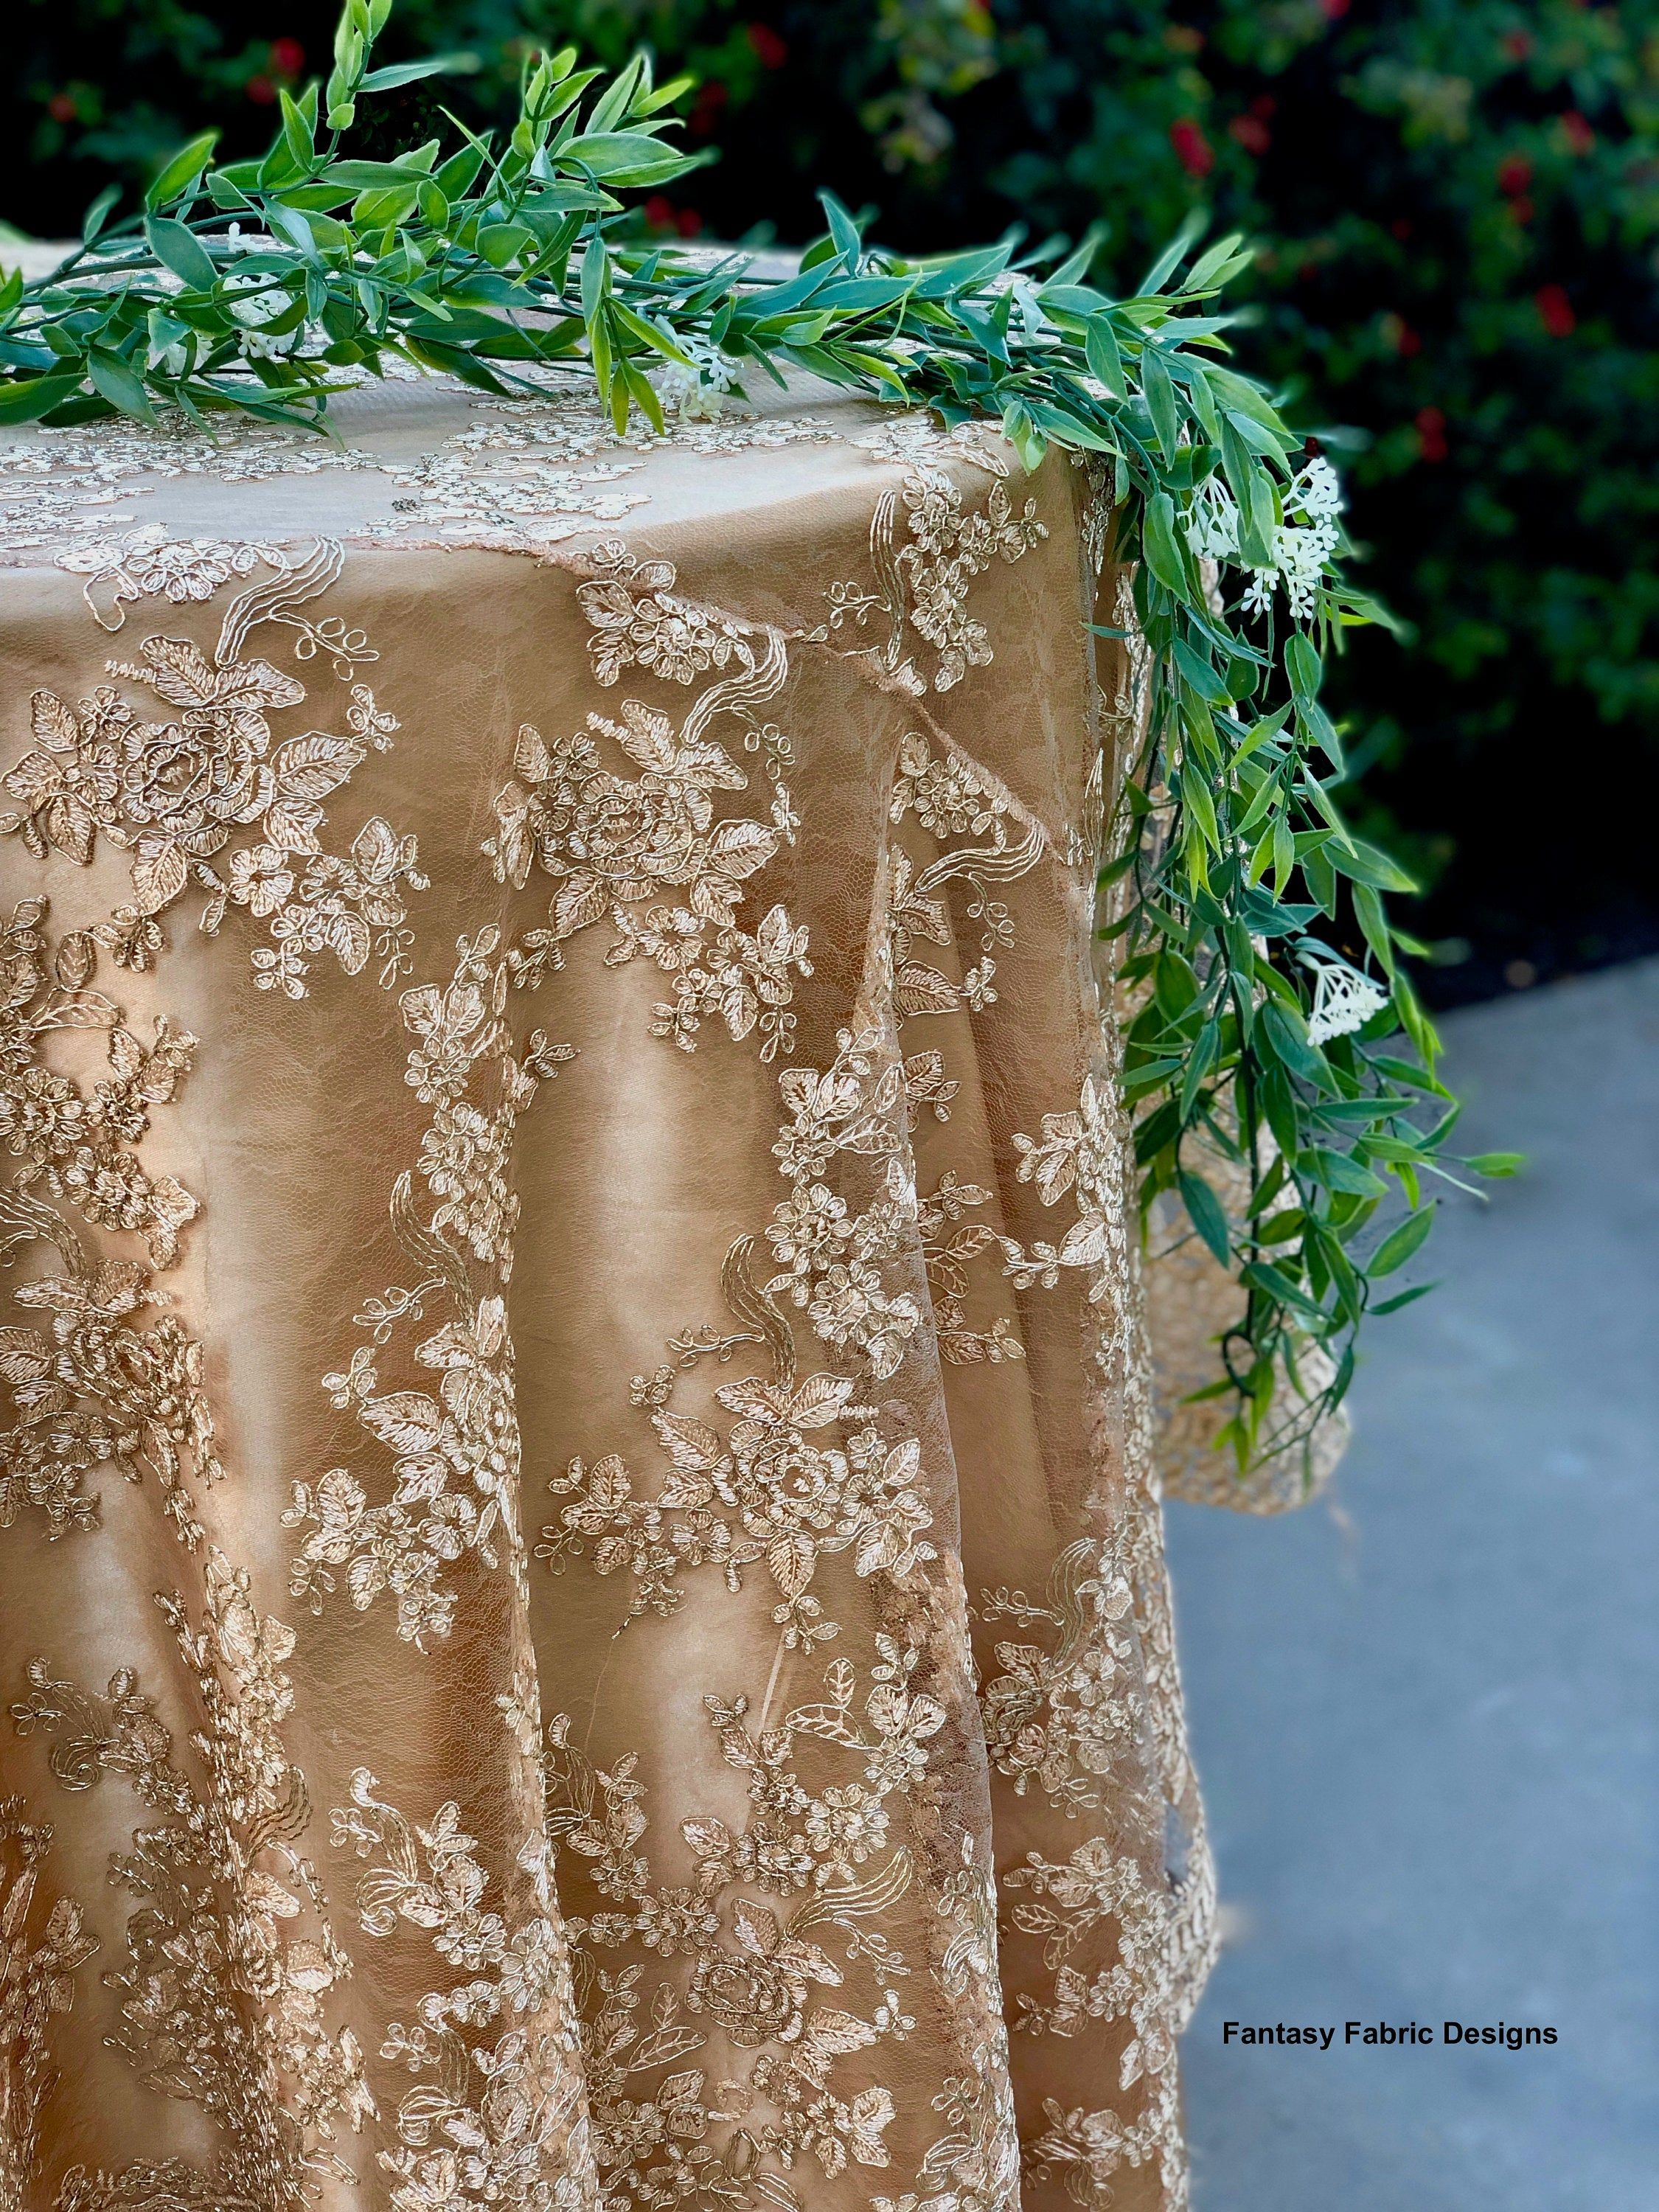 Vintage Wedding Table Cloth Gold Tablecloth Overlay Lace Tablecloth Table Runner Embroidered Lace Gold Table Overlay Silver Sale In 2020 Gold Tablecloth Table Overlays Vintage Wedding Table